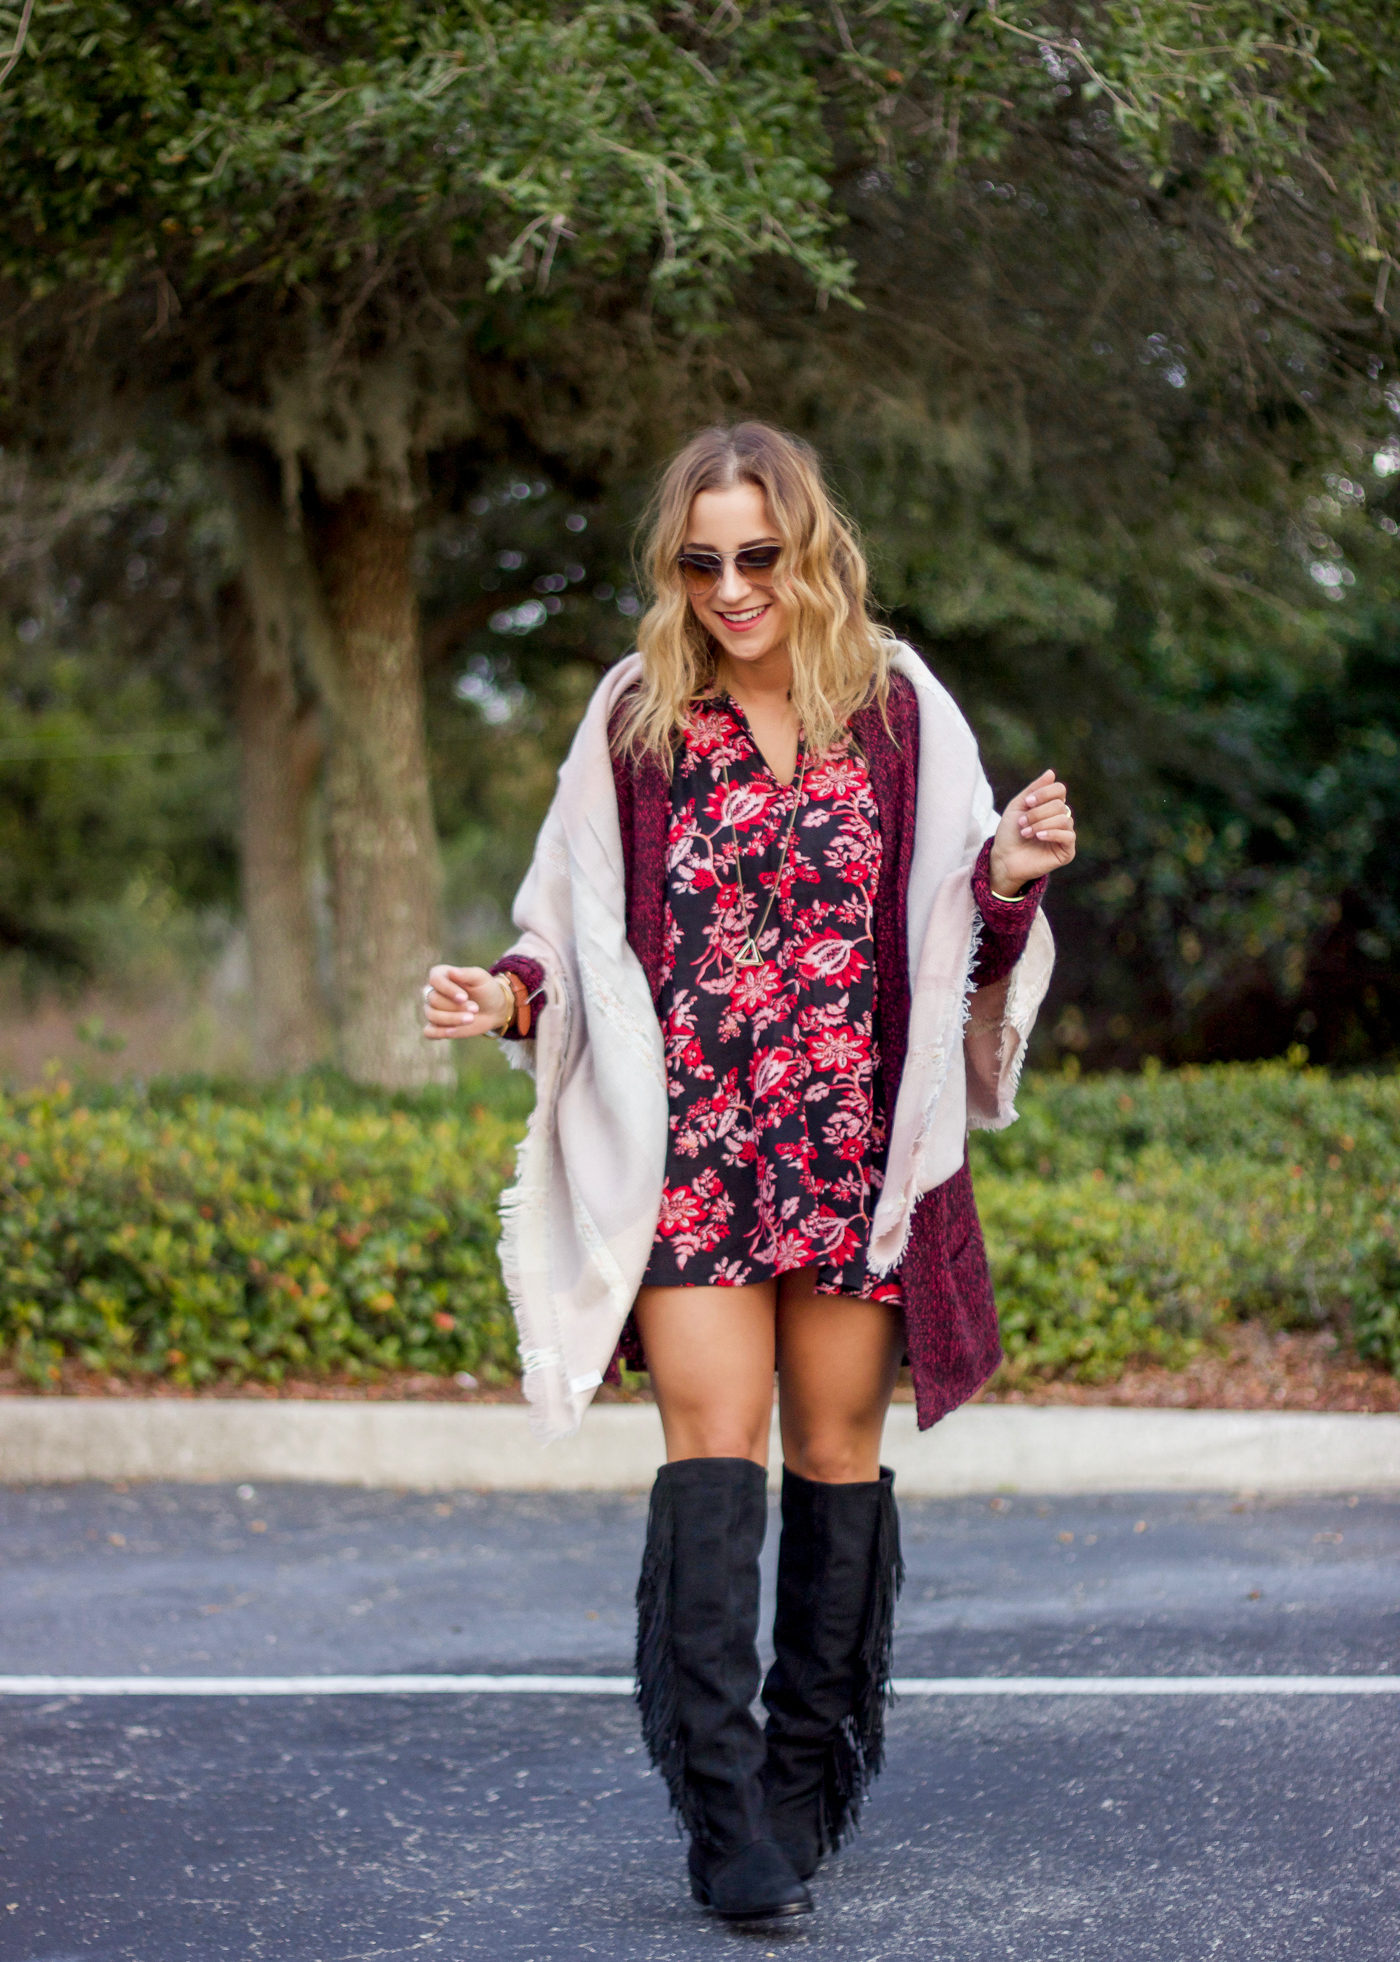 How to wear a dark floral dress in winter like a fashion blogger